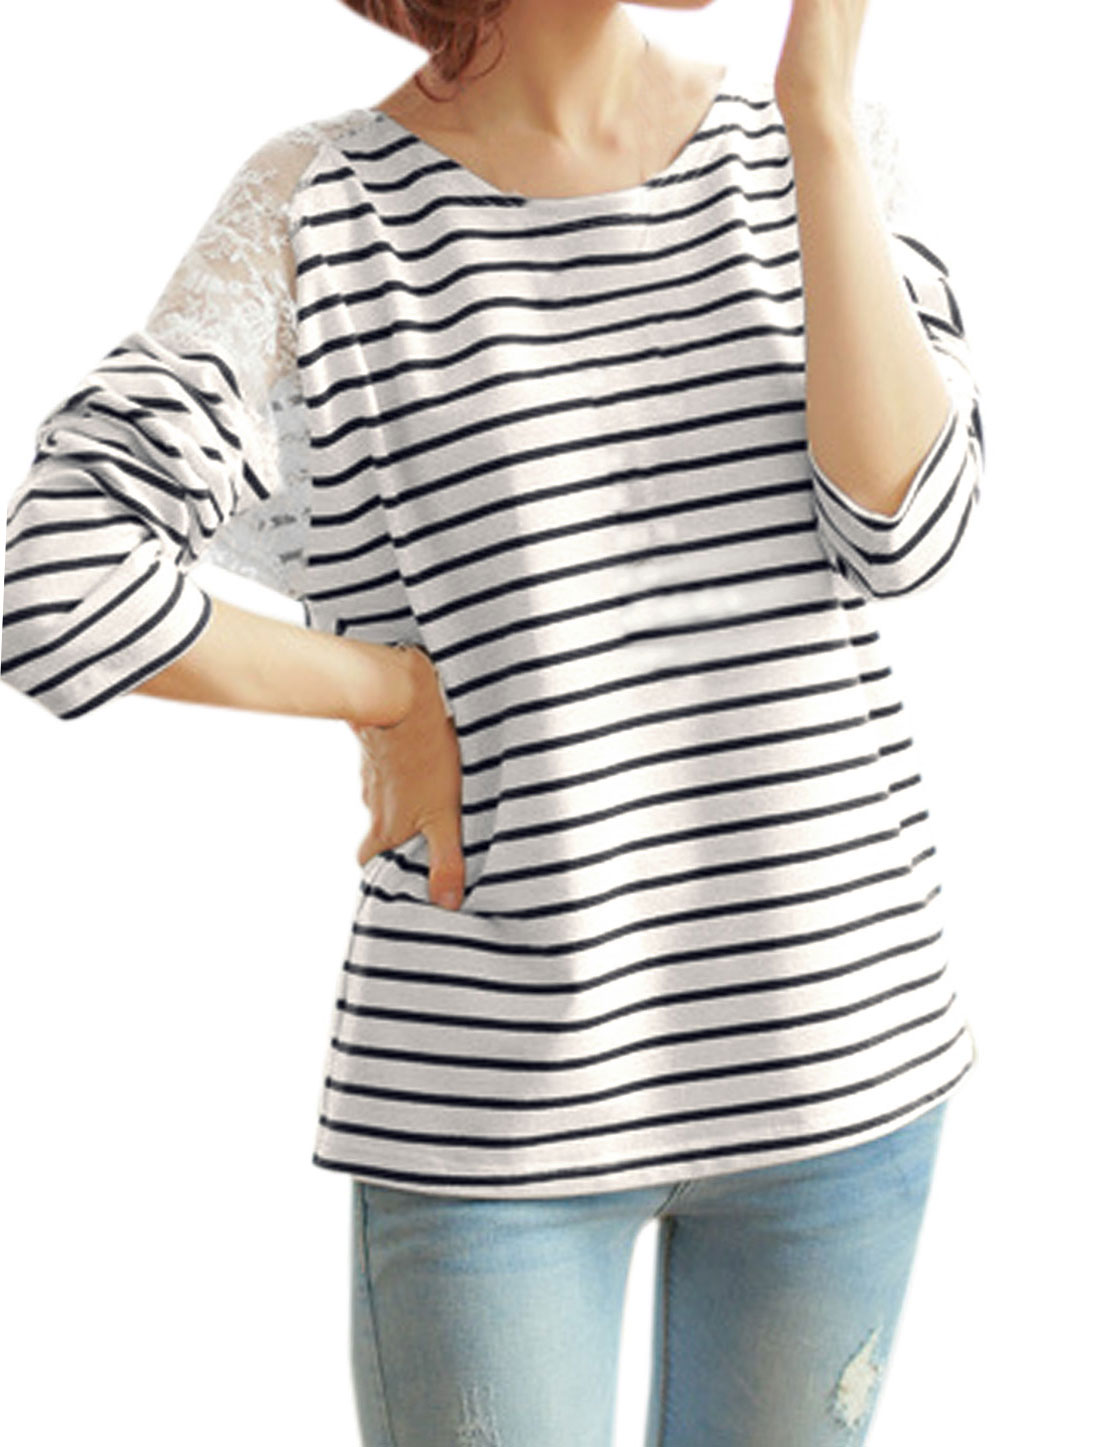 Ladies Navy Blue White Lace Splice Stripes Long Sleeves Loose Top S